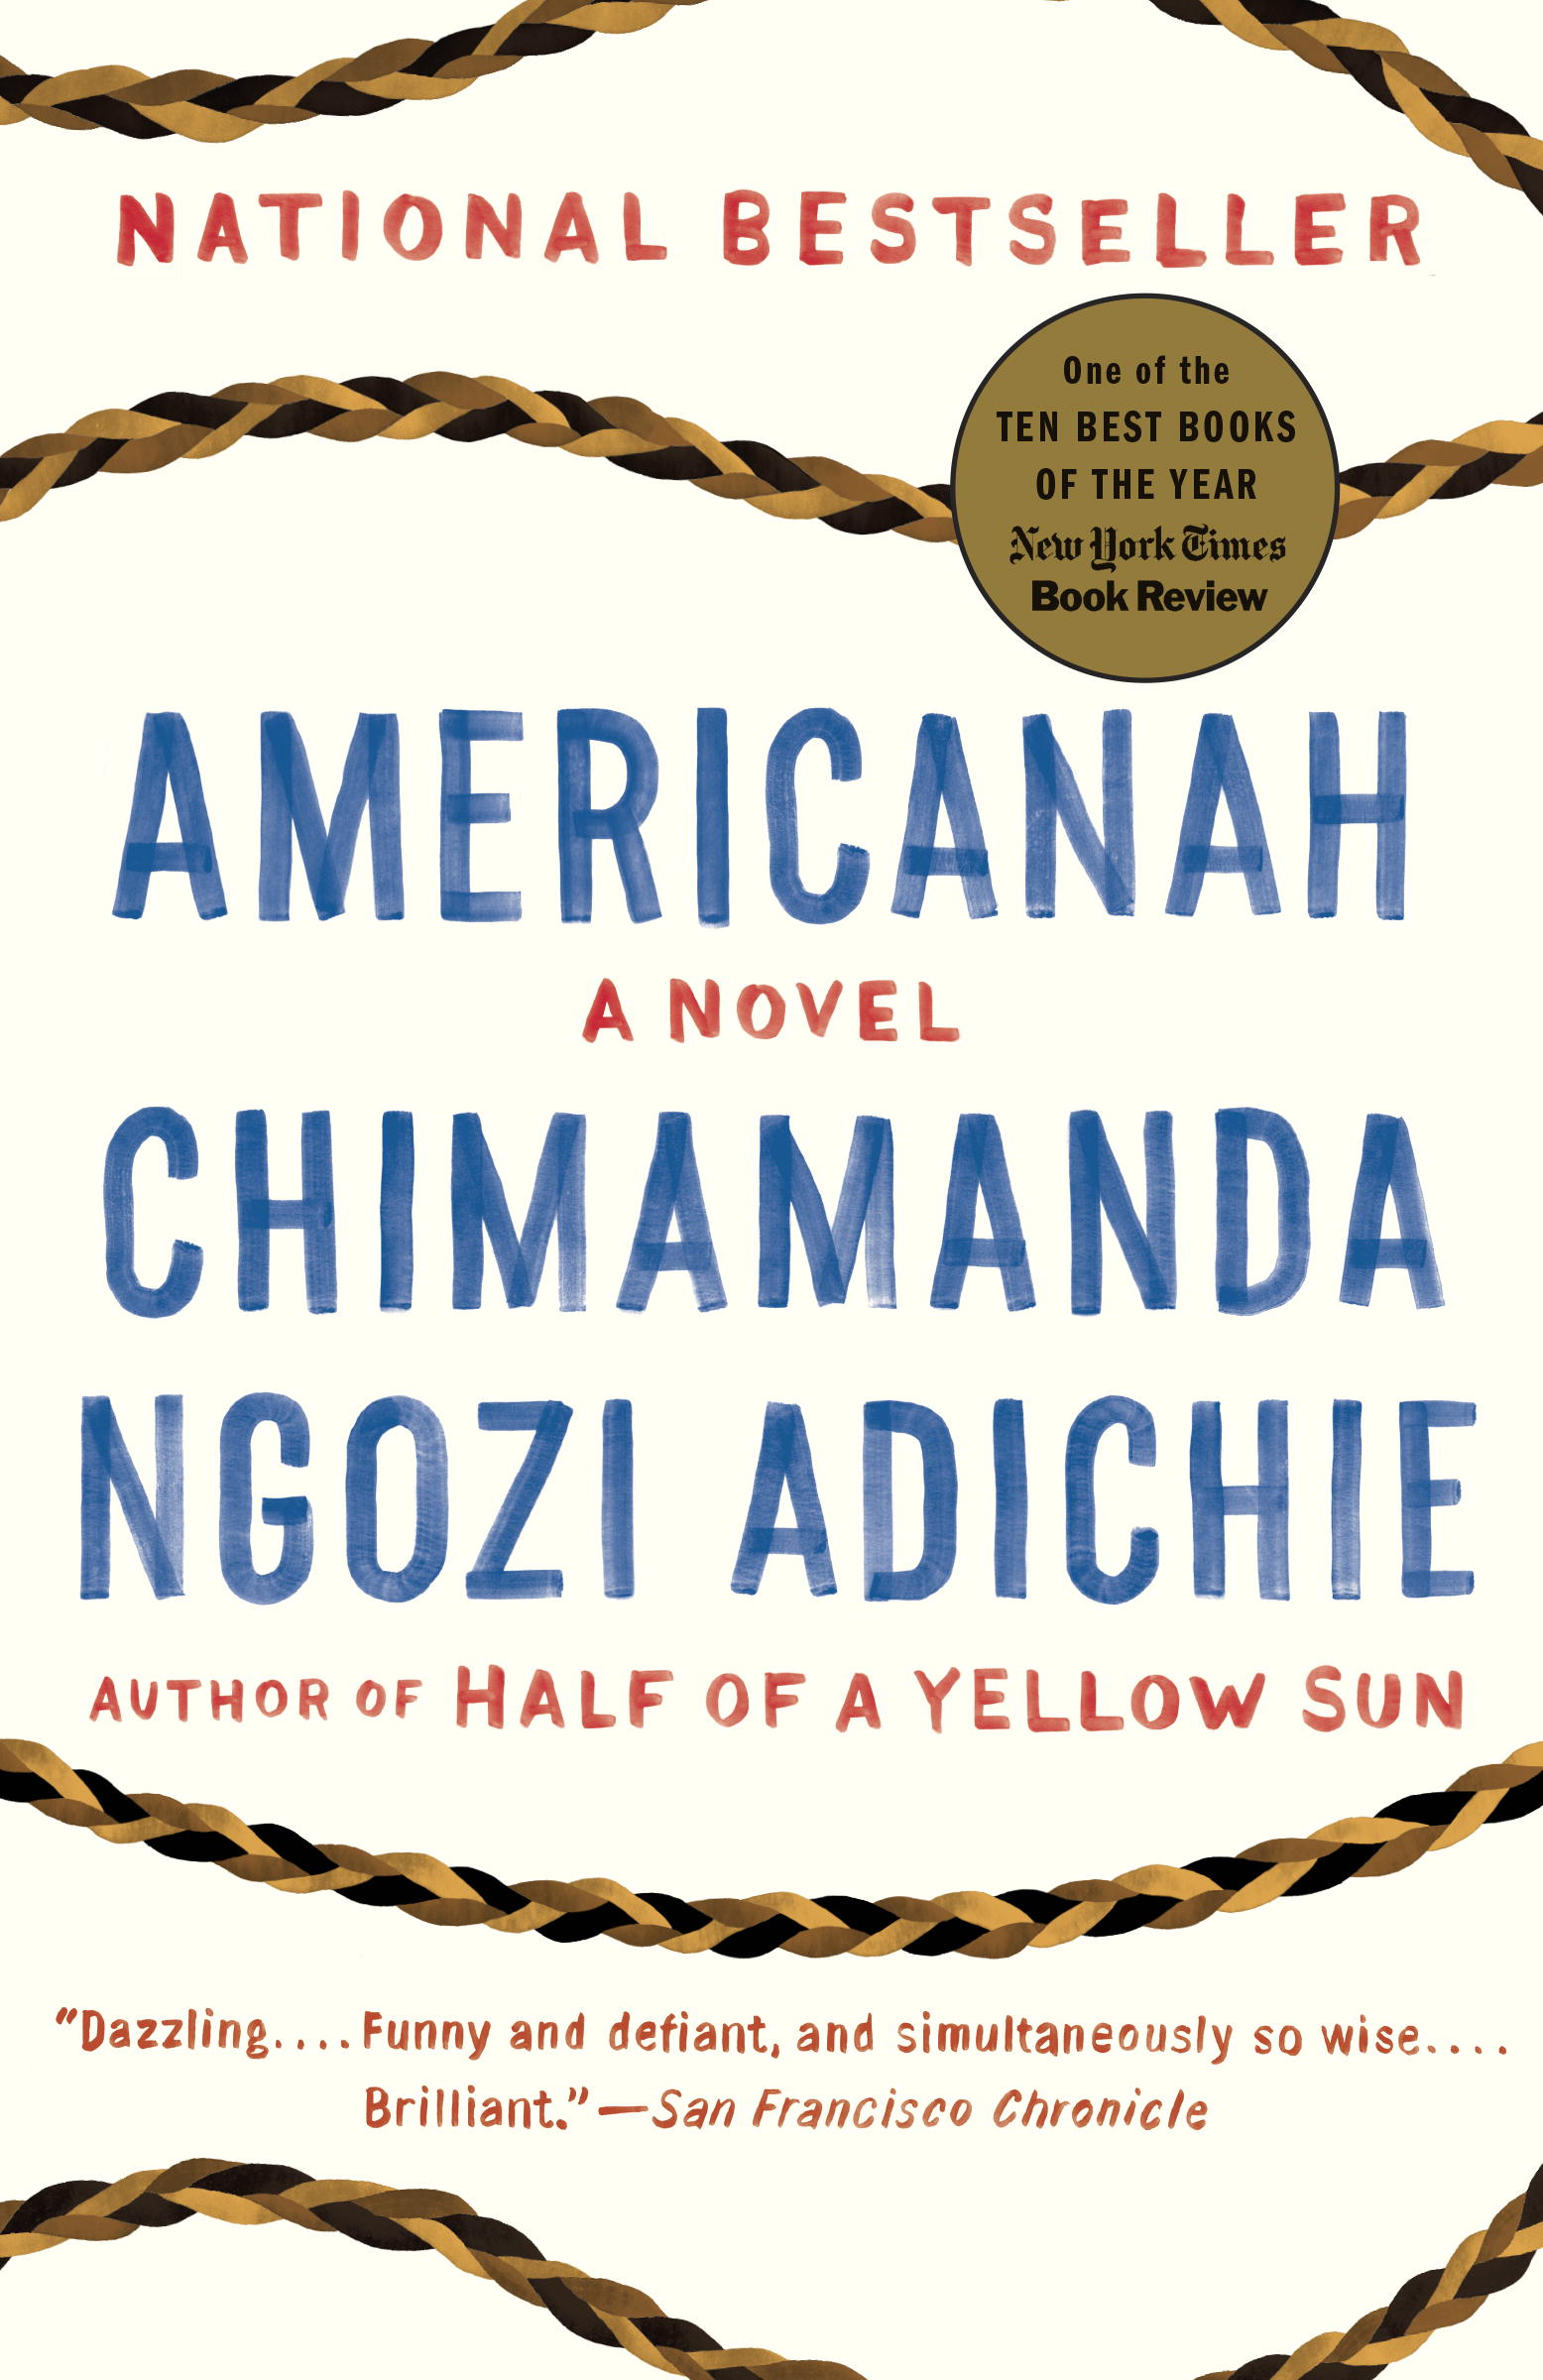 americanah wins inaugural one book one new york reading program